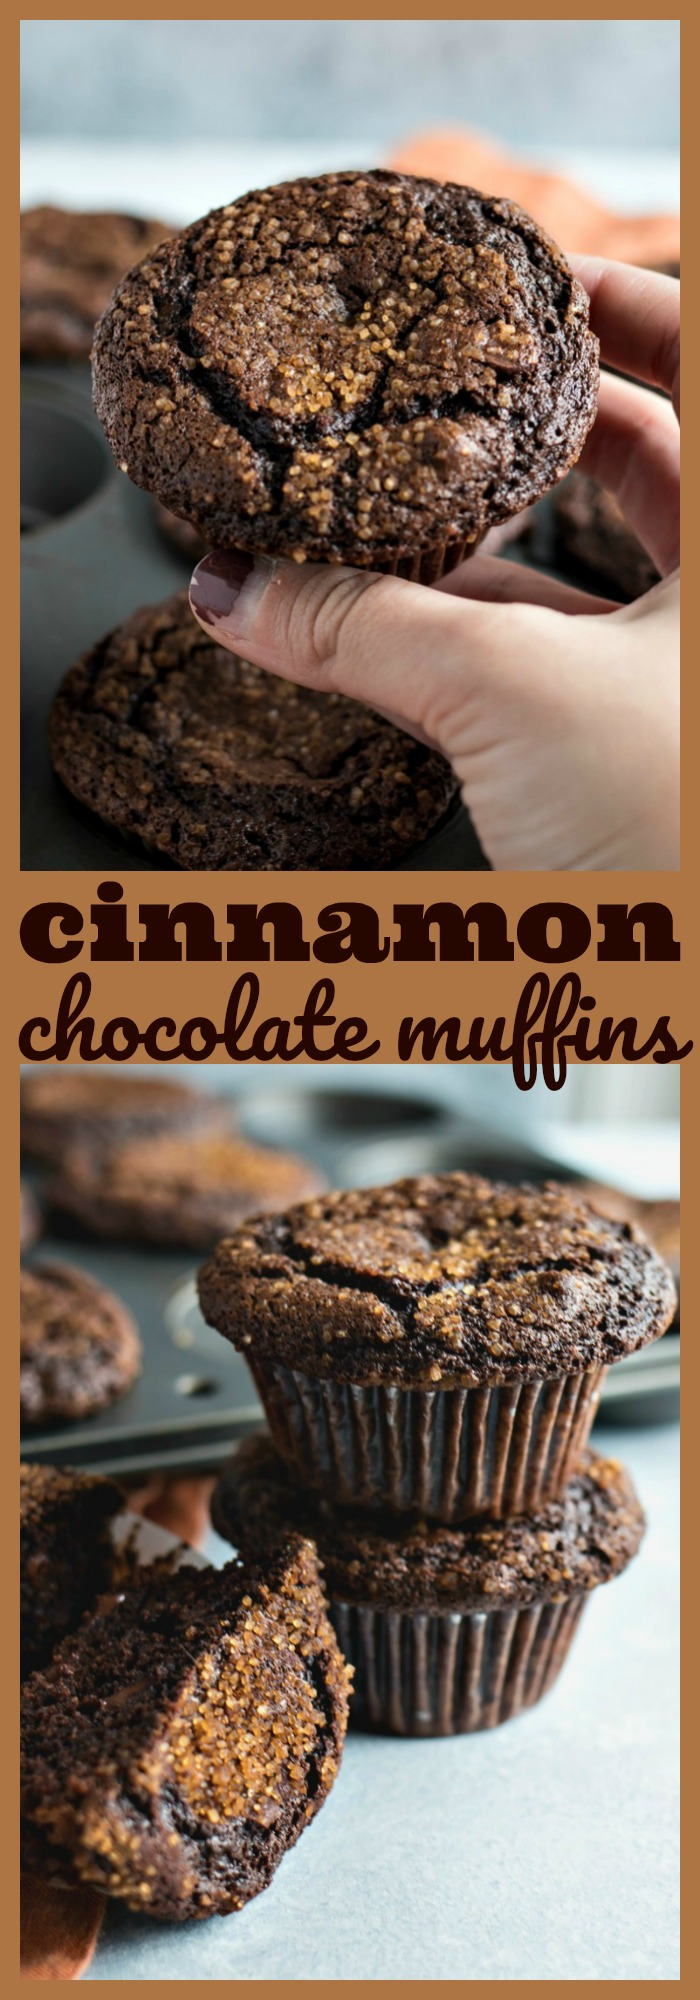 Cinnamon Chocolate Muffins photo collage